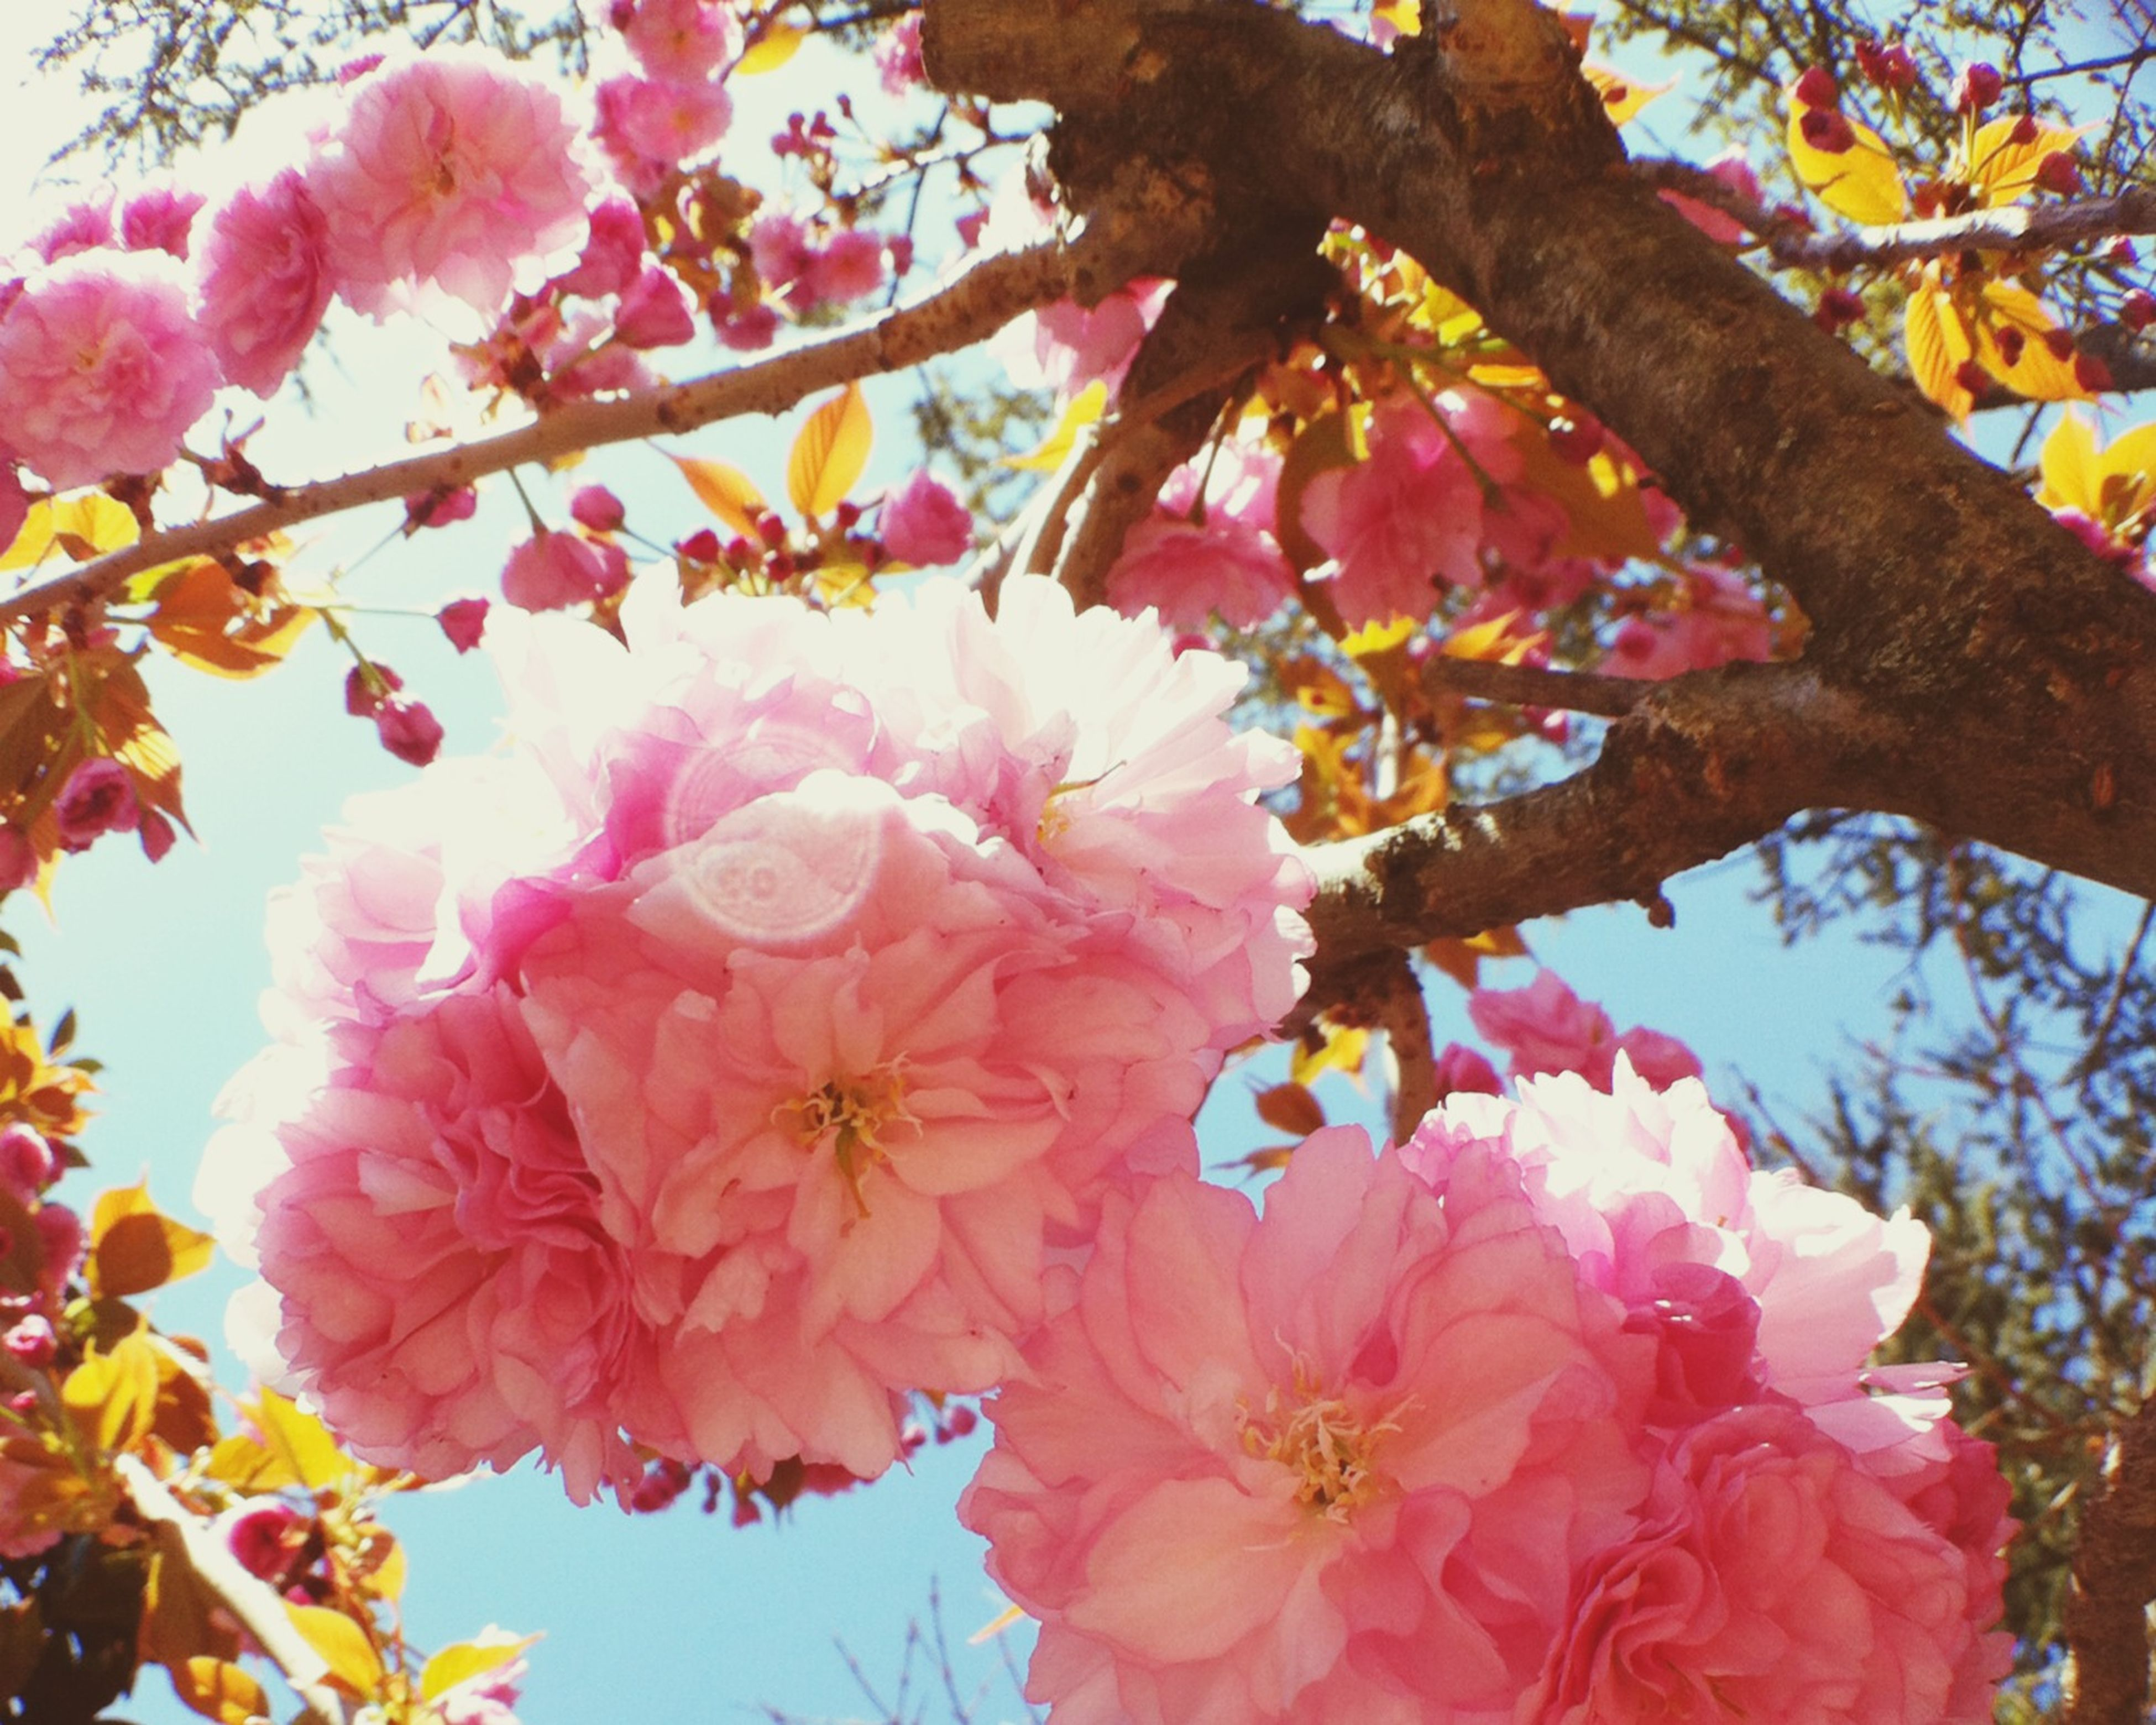 flower, freshness, branch, low angle view, tree, fragility, growth, beauty in nature, petal, blossom, nature, pink color, blooming, cherry blossom, in bloom, springtime, cherry tree, sky, flower head, botany